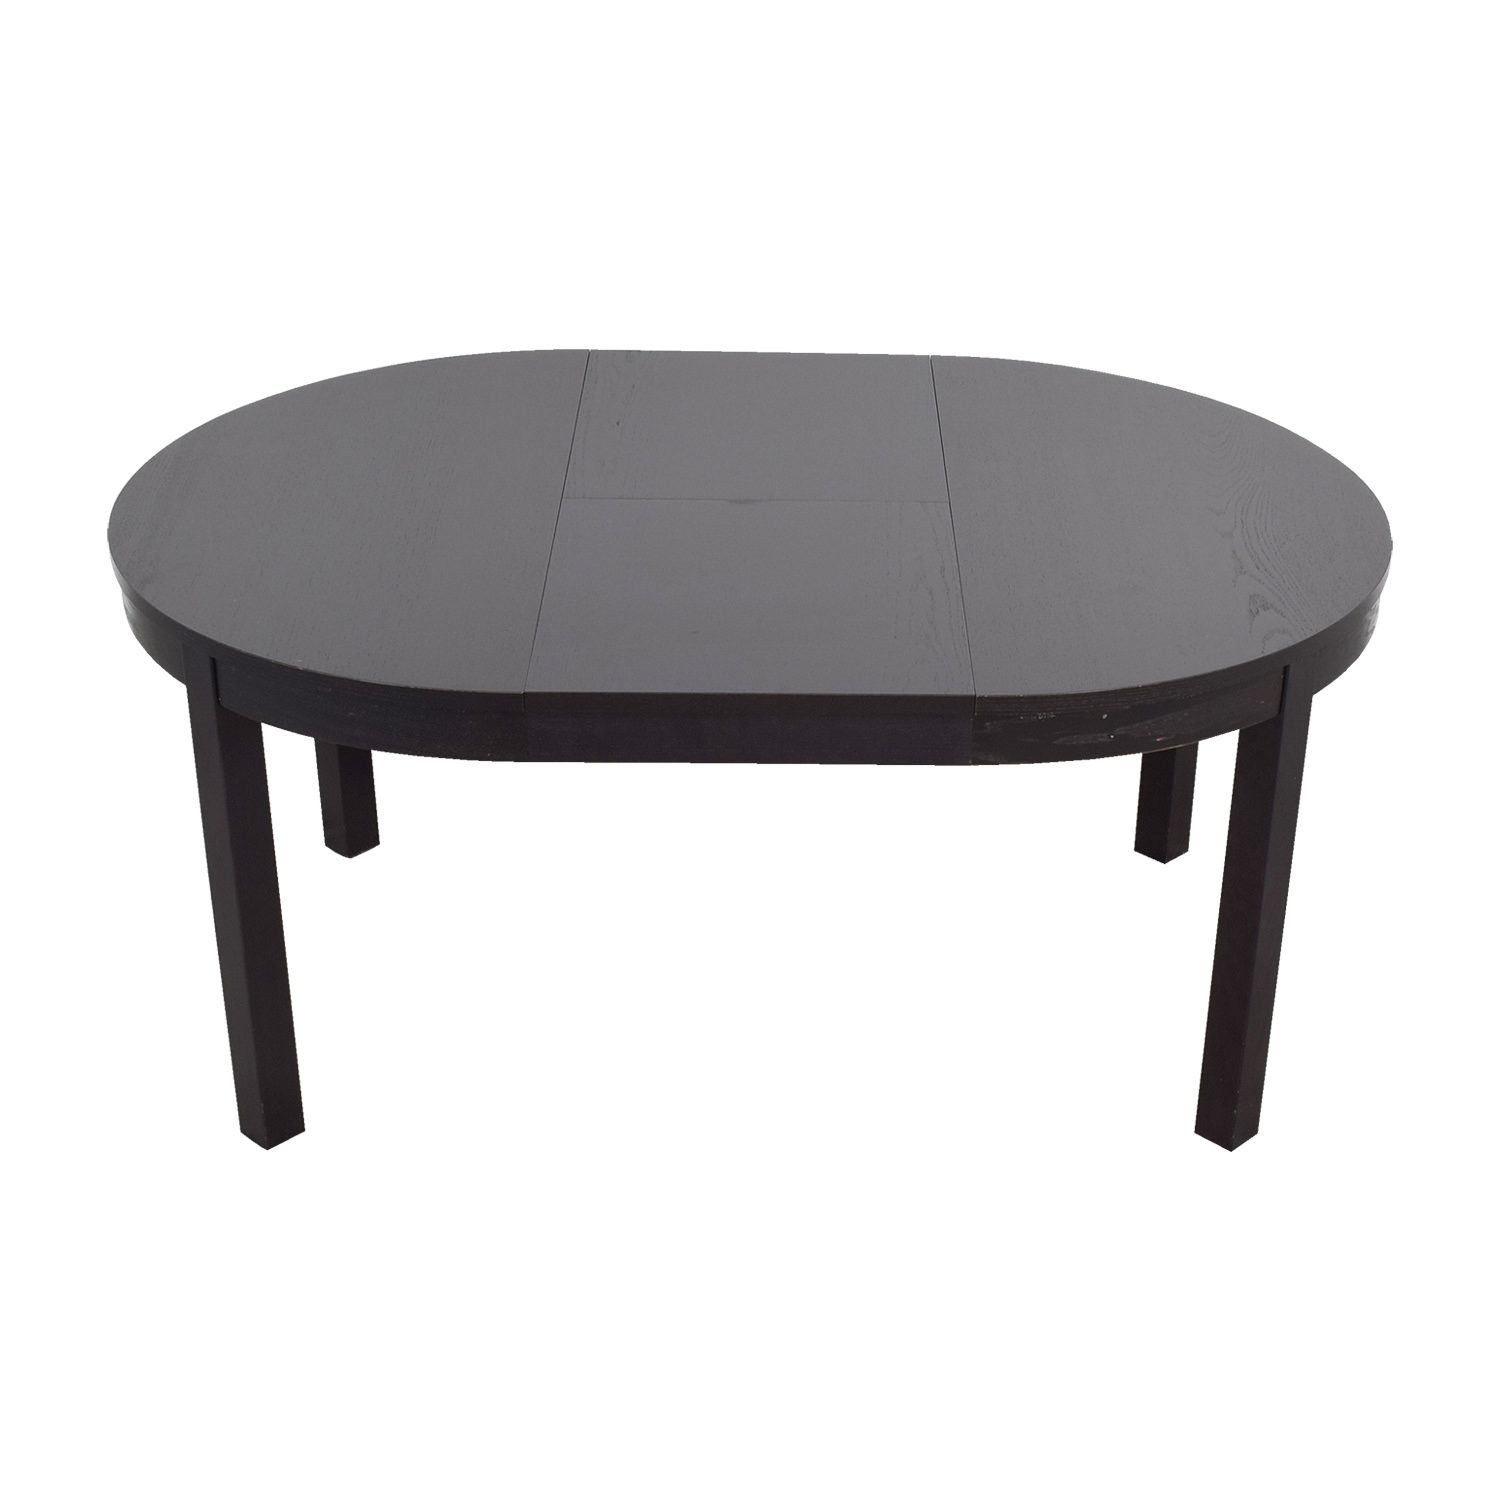 89 off ikea ikea bjursta extendable round to oval for Extendable dining table